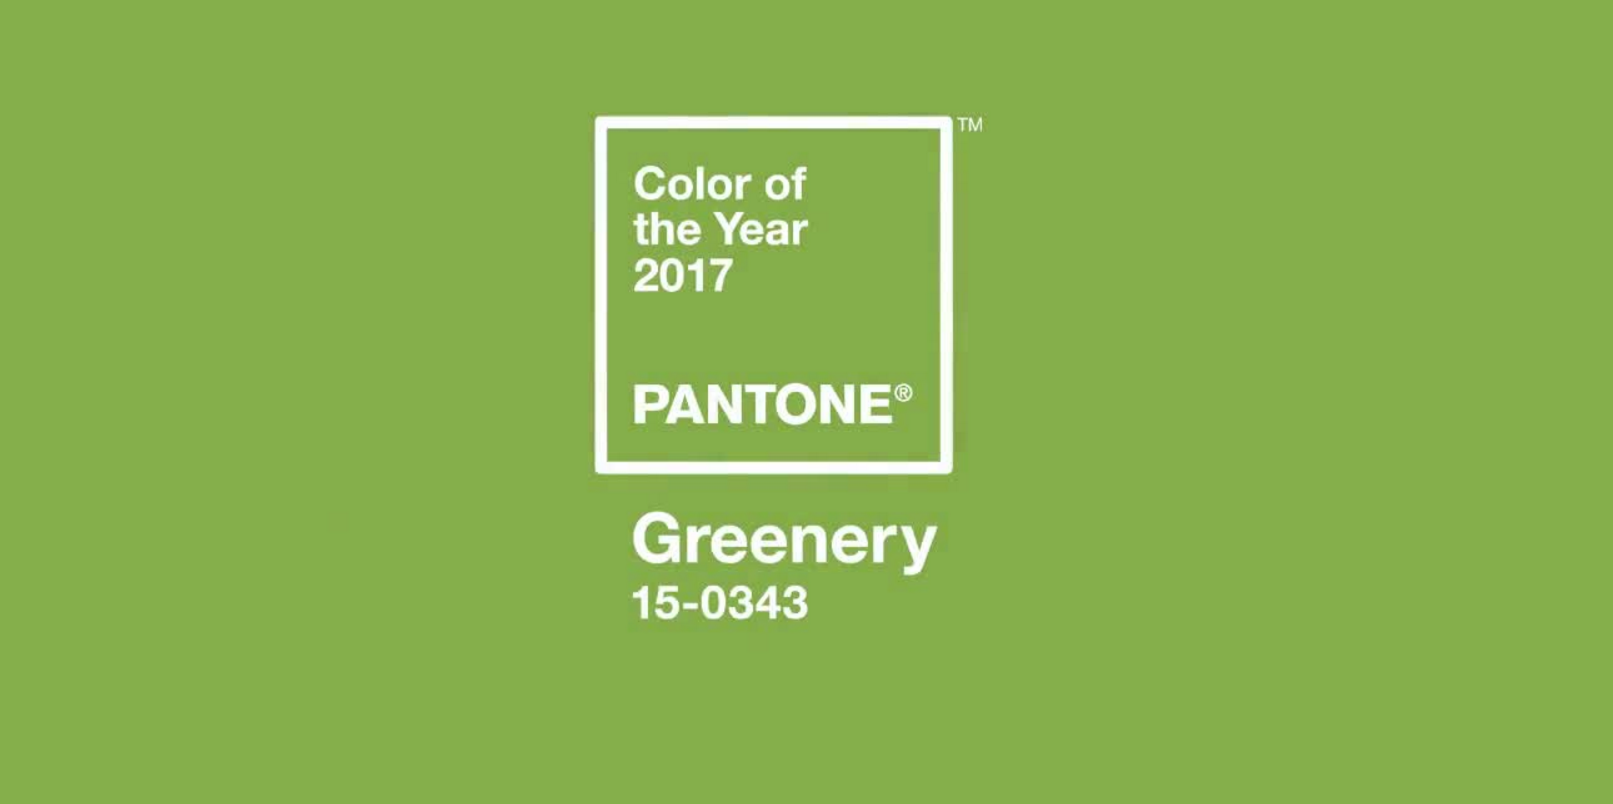 What is the pantone color of the year its greenery its a greenery is a fresh and zesty yellow green shade that evokes the first days of spring when natures greens revive restore and renew buycottarizona Choice Image